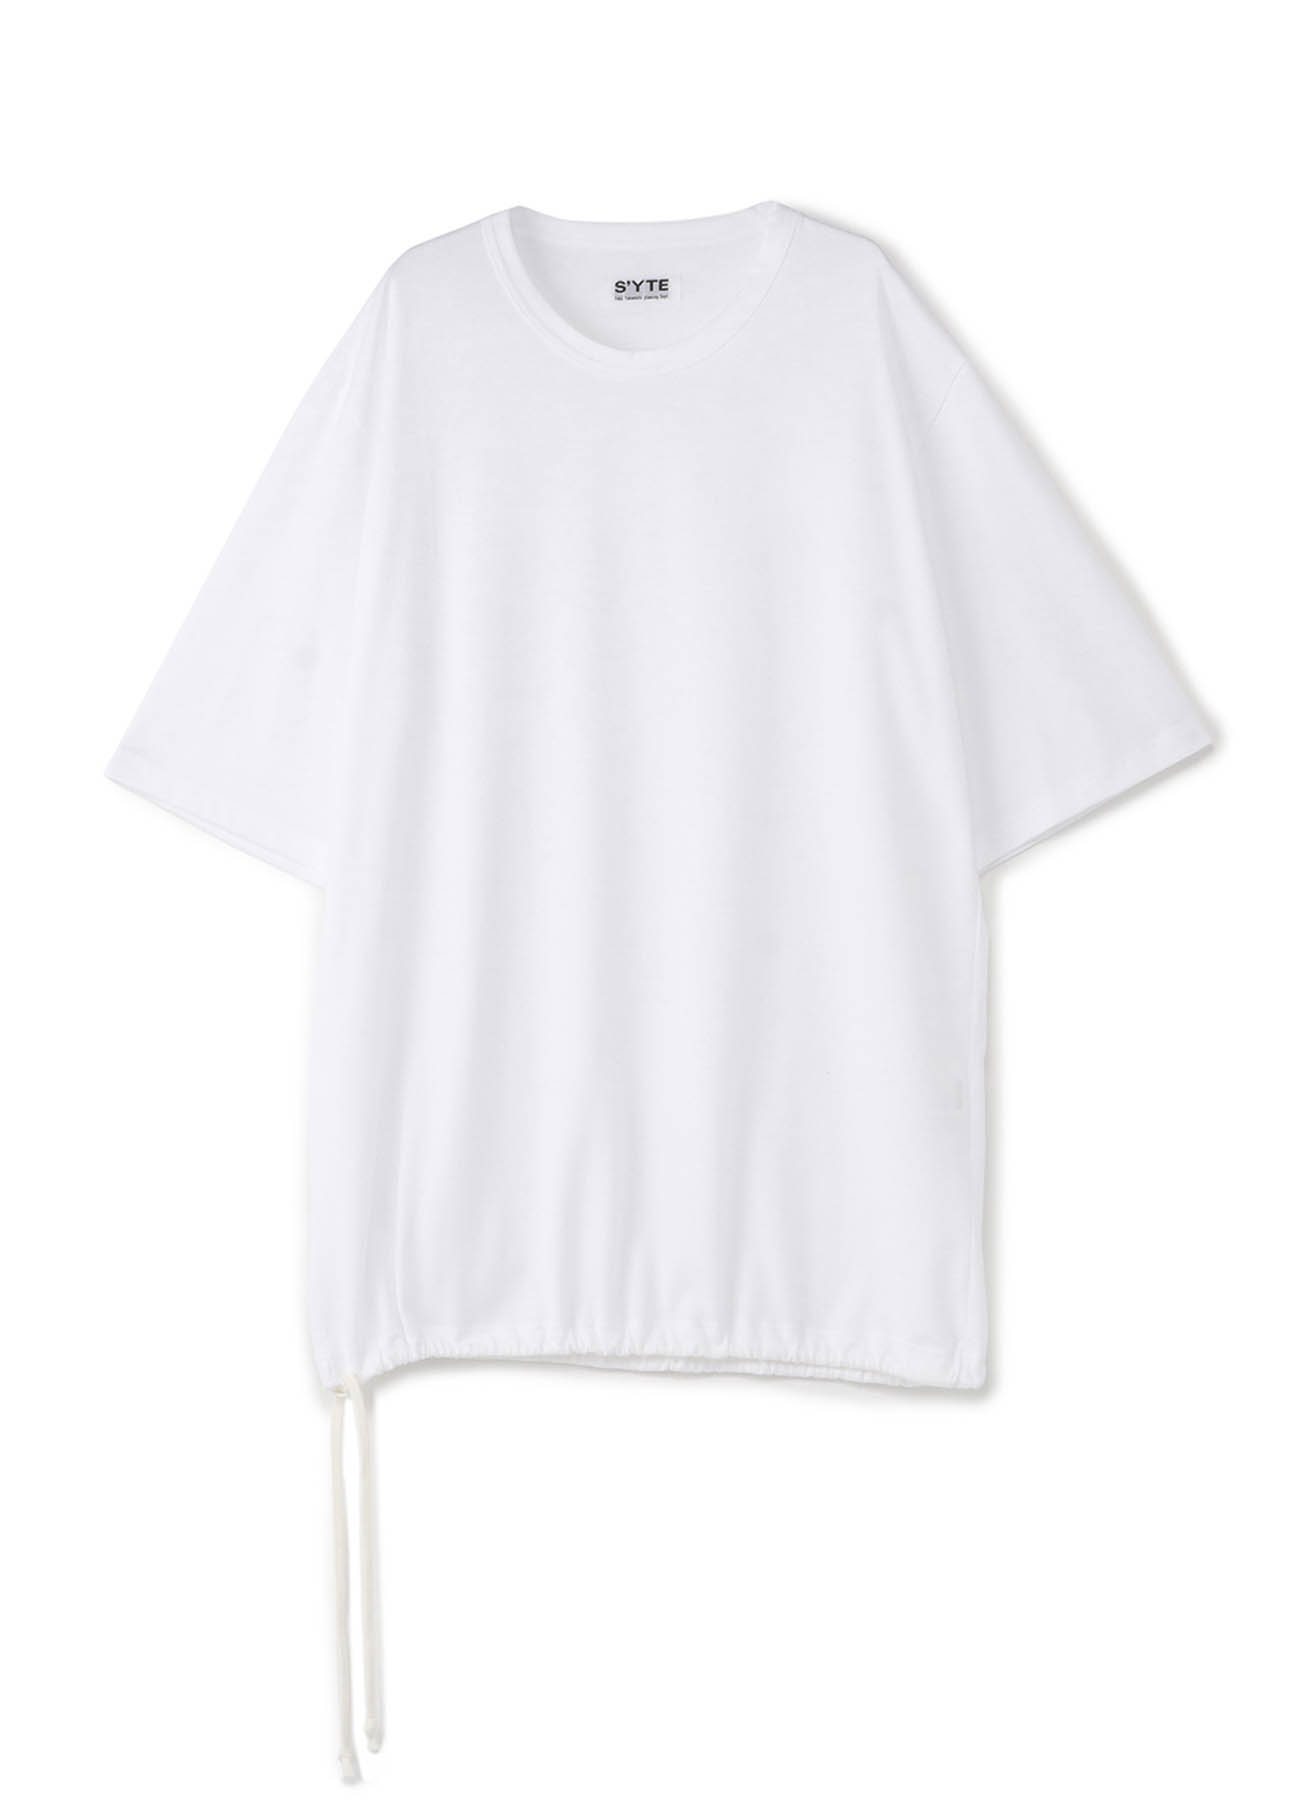 40/2Cotton Jersey Crew Drawstring Balloon Big T-shirt